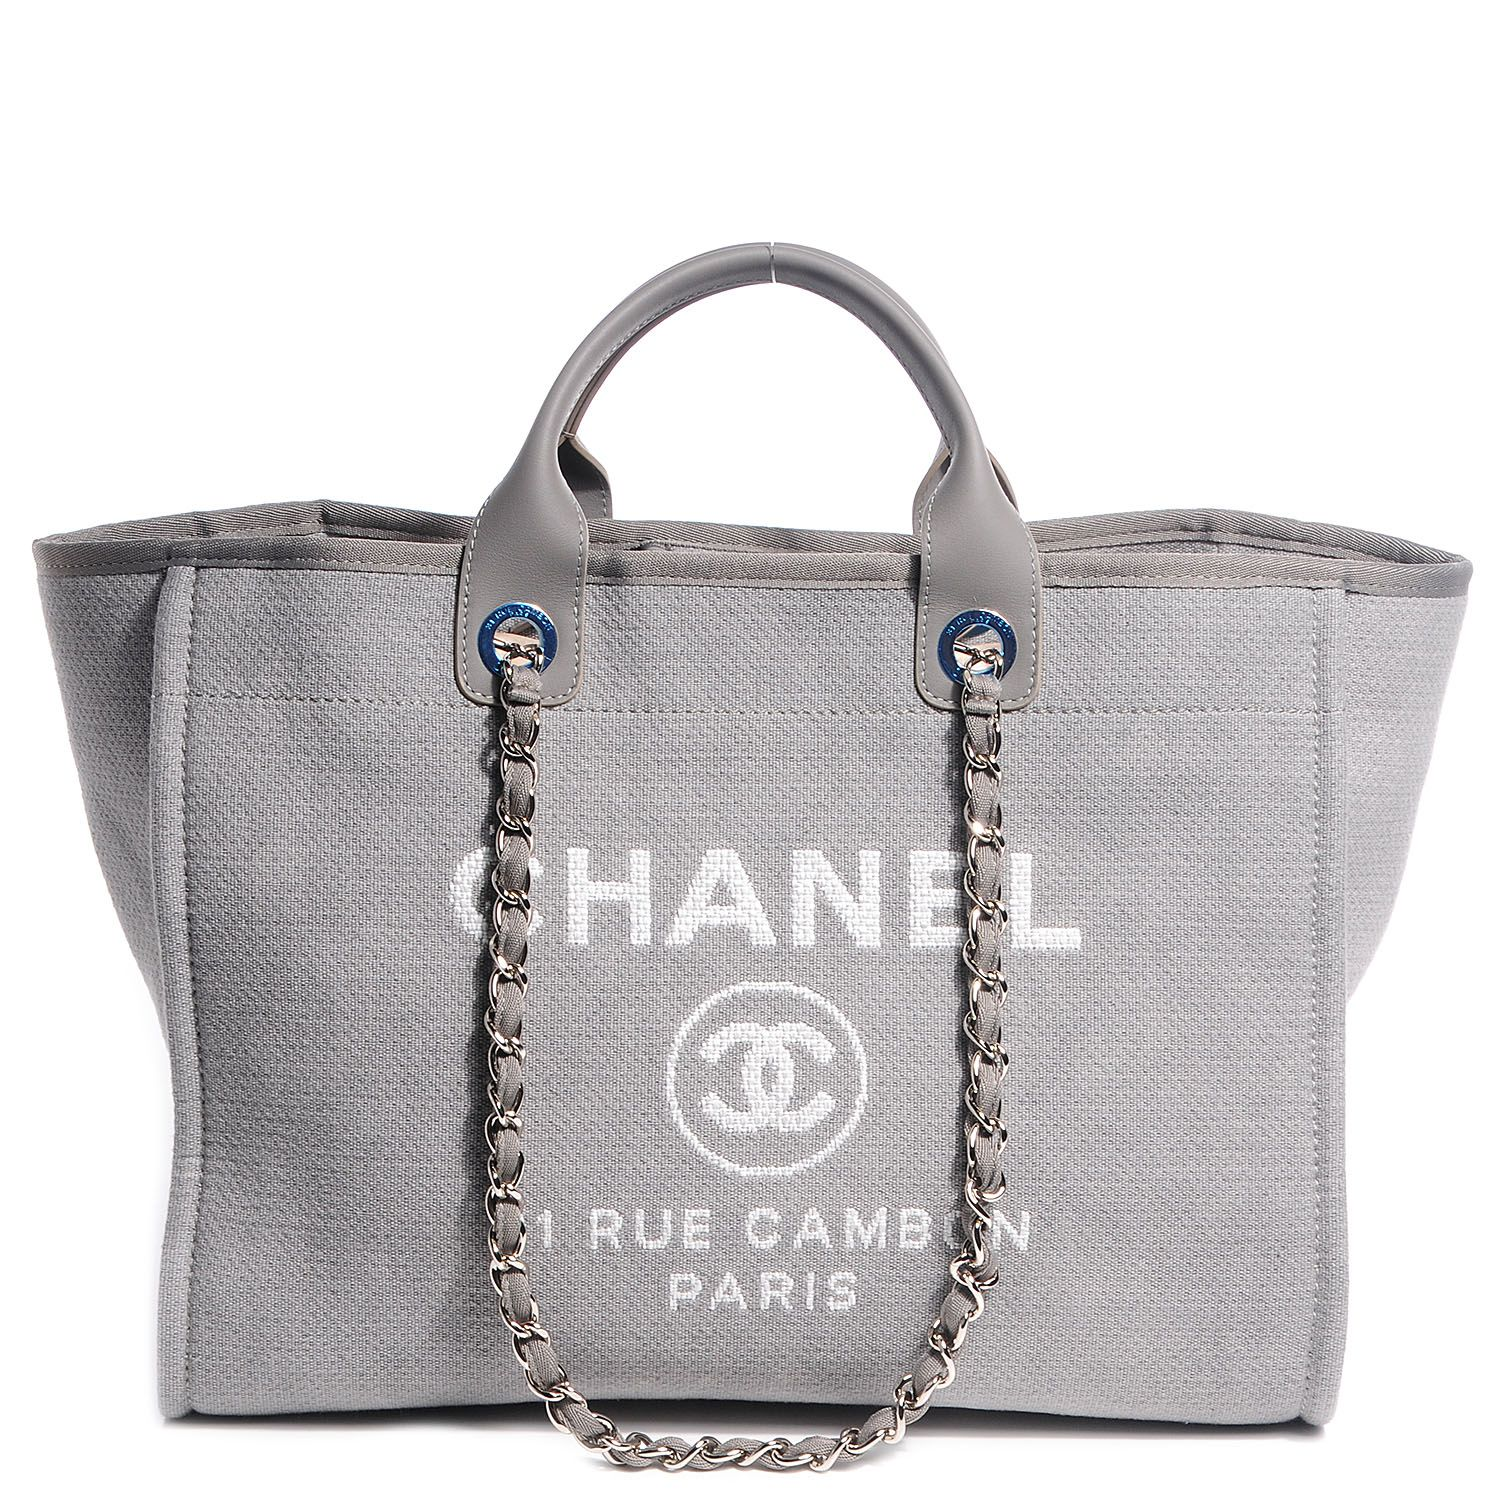 0fe638949da4 CHANEL Canvas Deauville Large Tote Grey - NEW. This lovely bag is crafted  of fine canvas with a white printed advertisement logo.